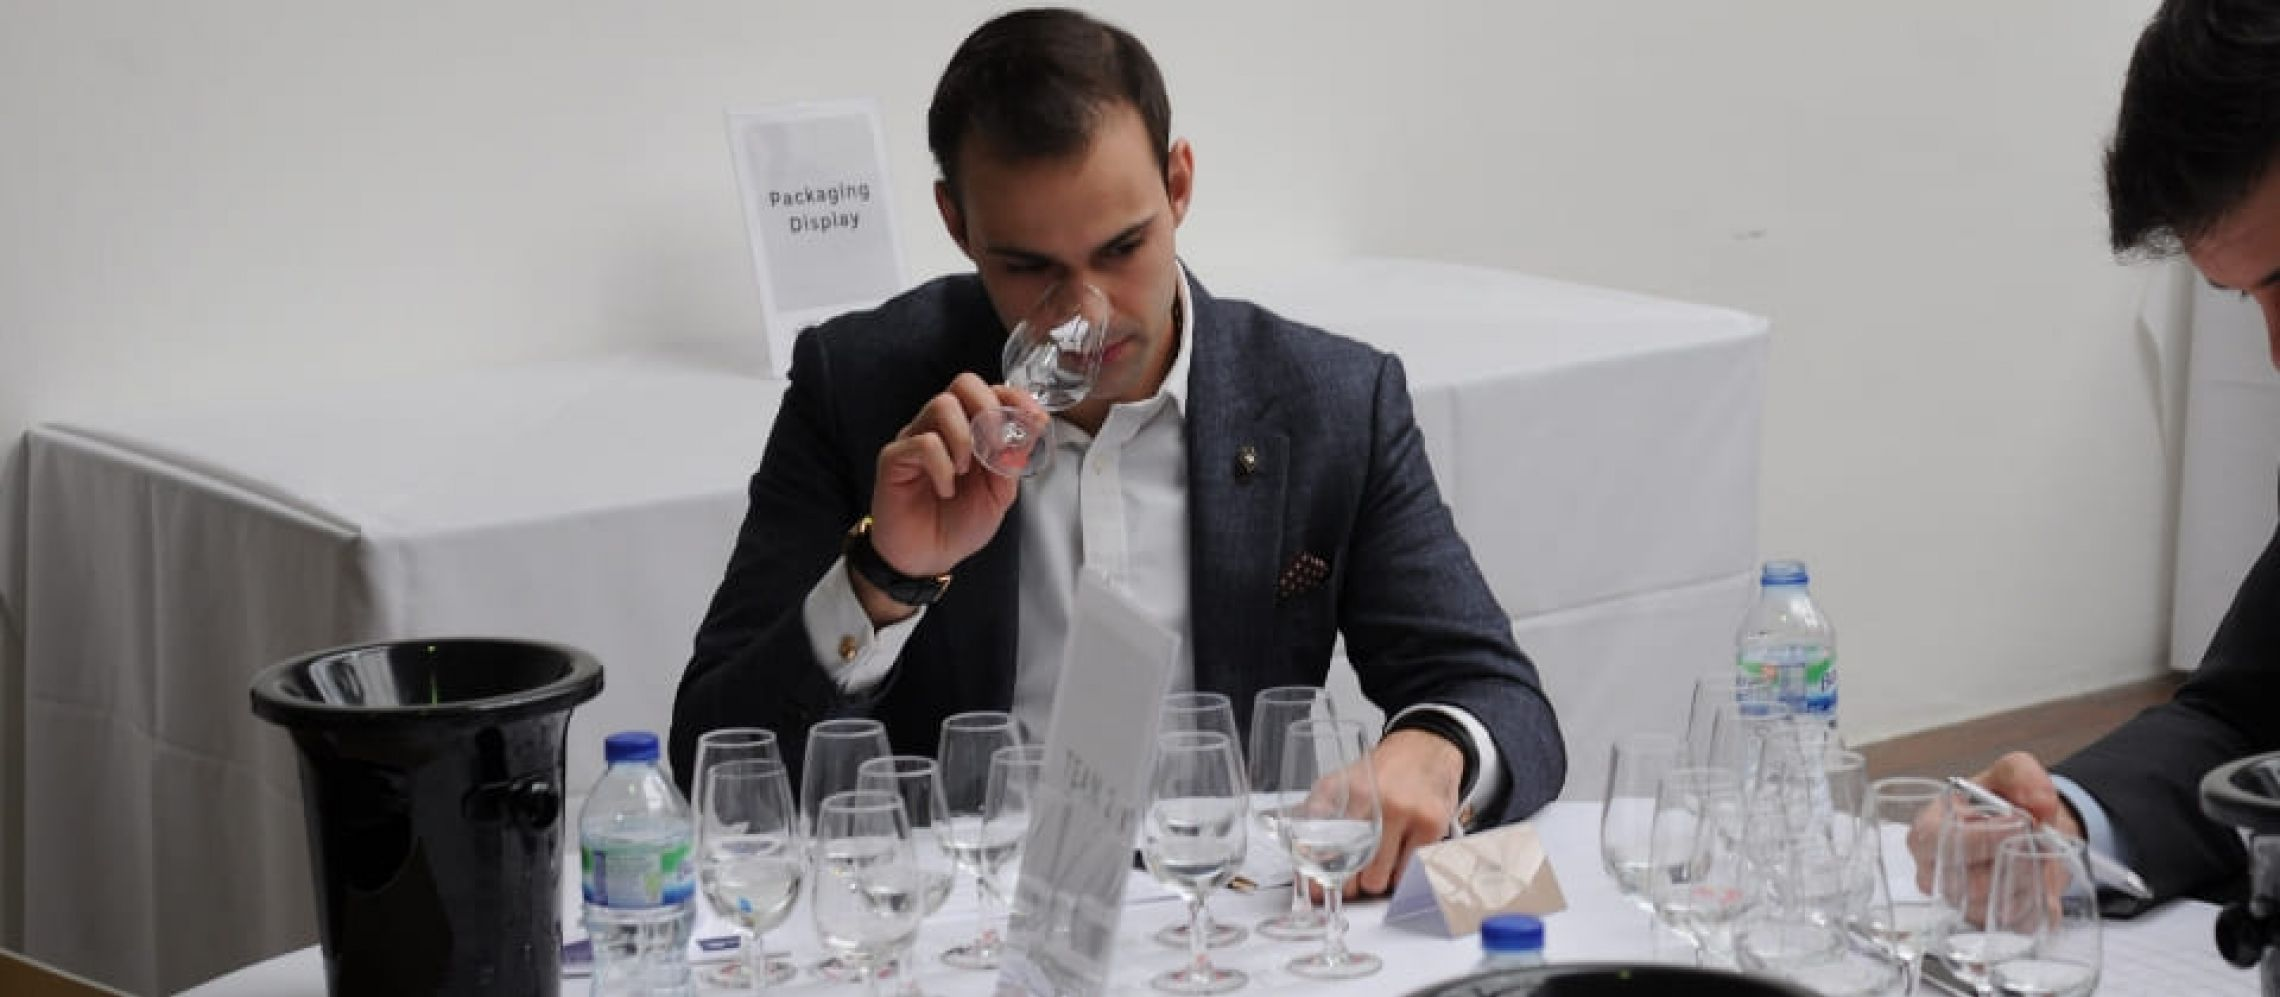 Photo for: What do Mixologists Look For in a New Spirits Brand?